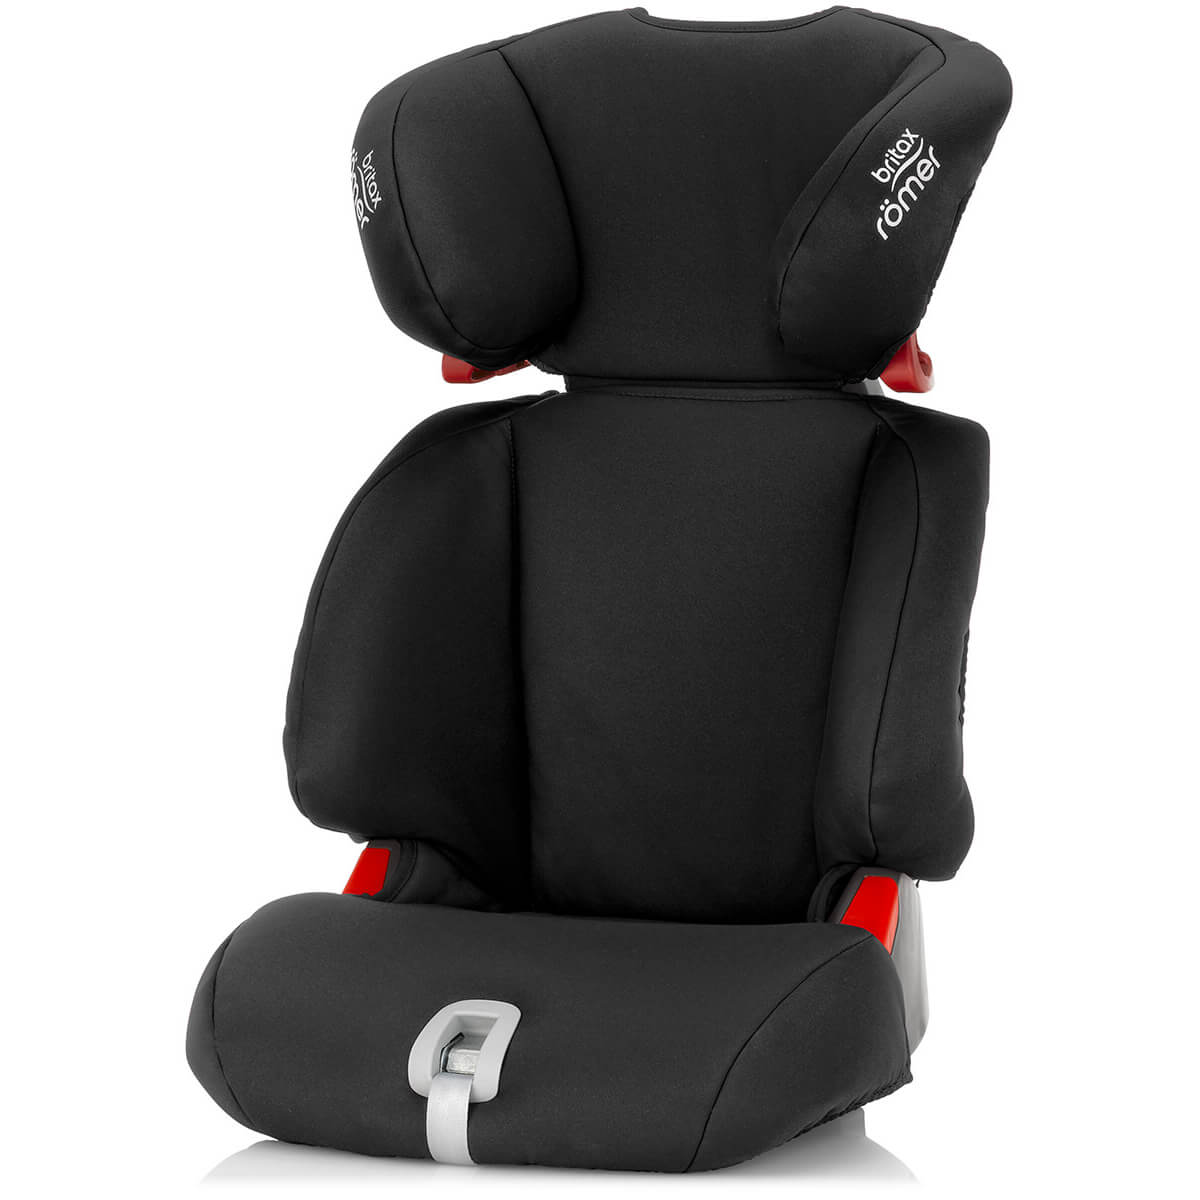 Discovery SL Cosmos Black Child Car Seat